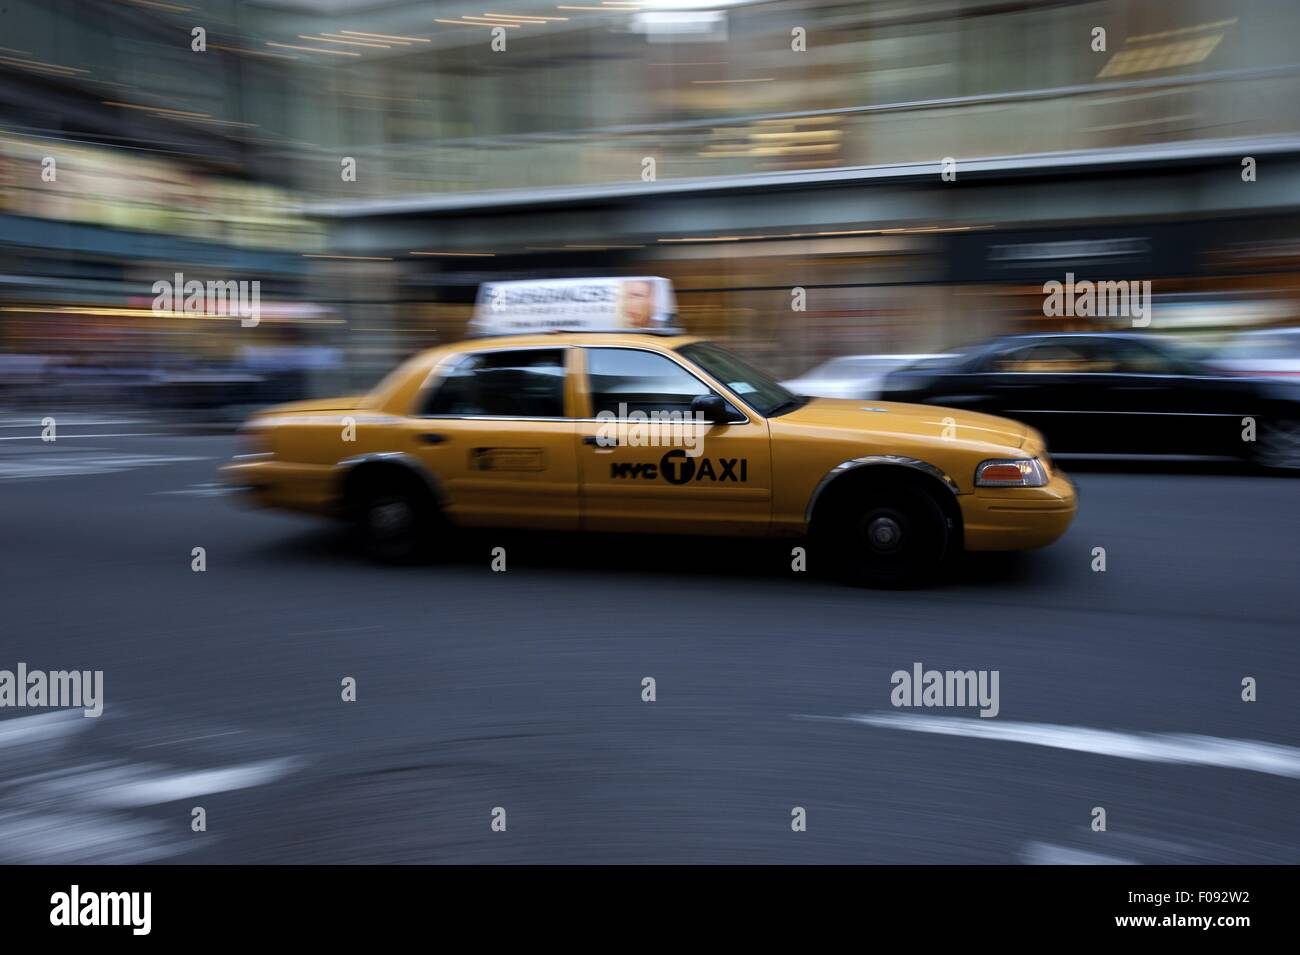 Taxi on road of New York, Blurred motion - Stock Image